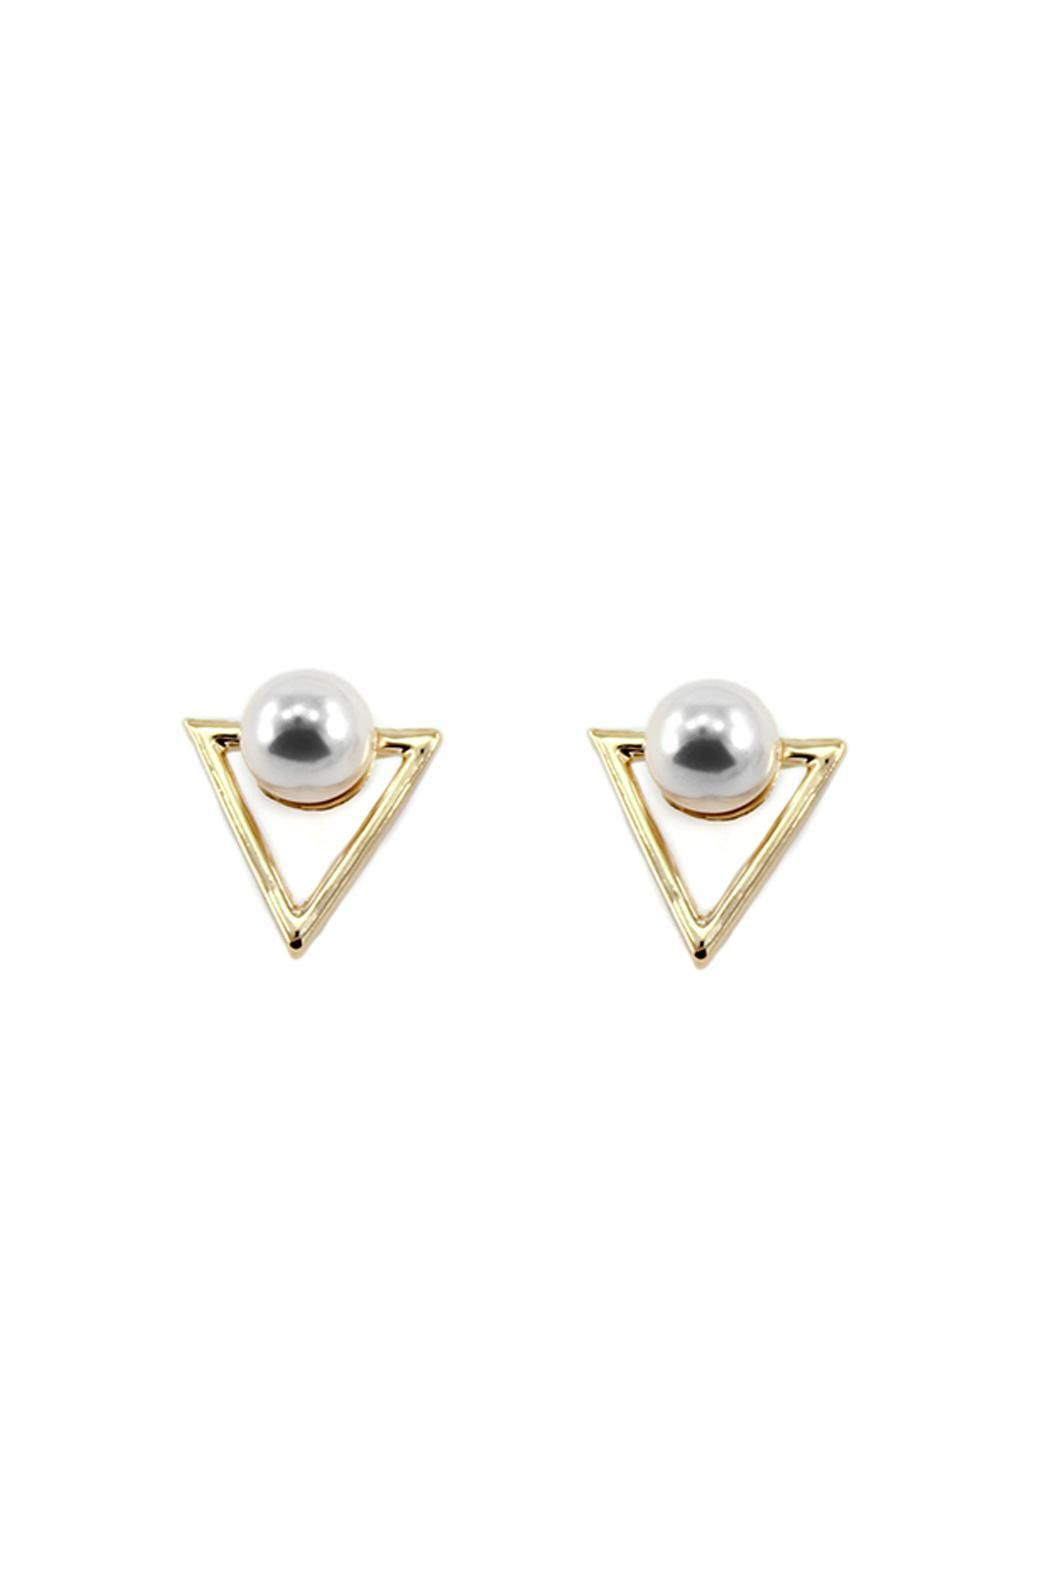 Adorable Gold Triangle With Pearl Stud Earrings Stainless Steel Earring Post Hypoallergenic